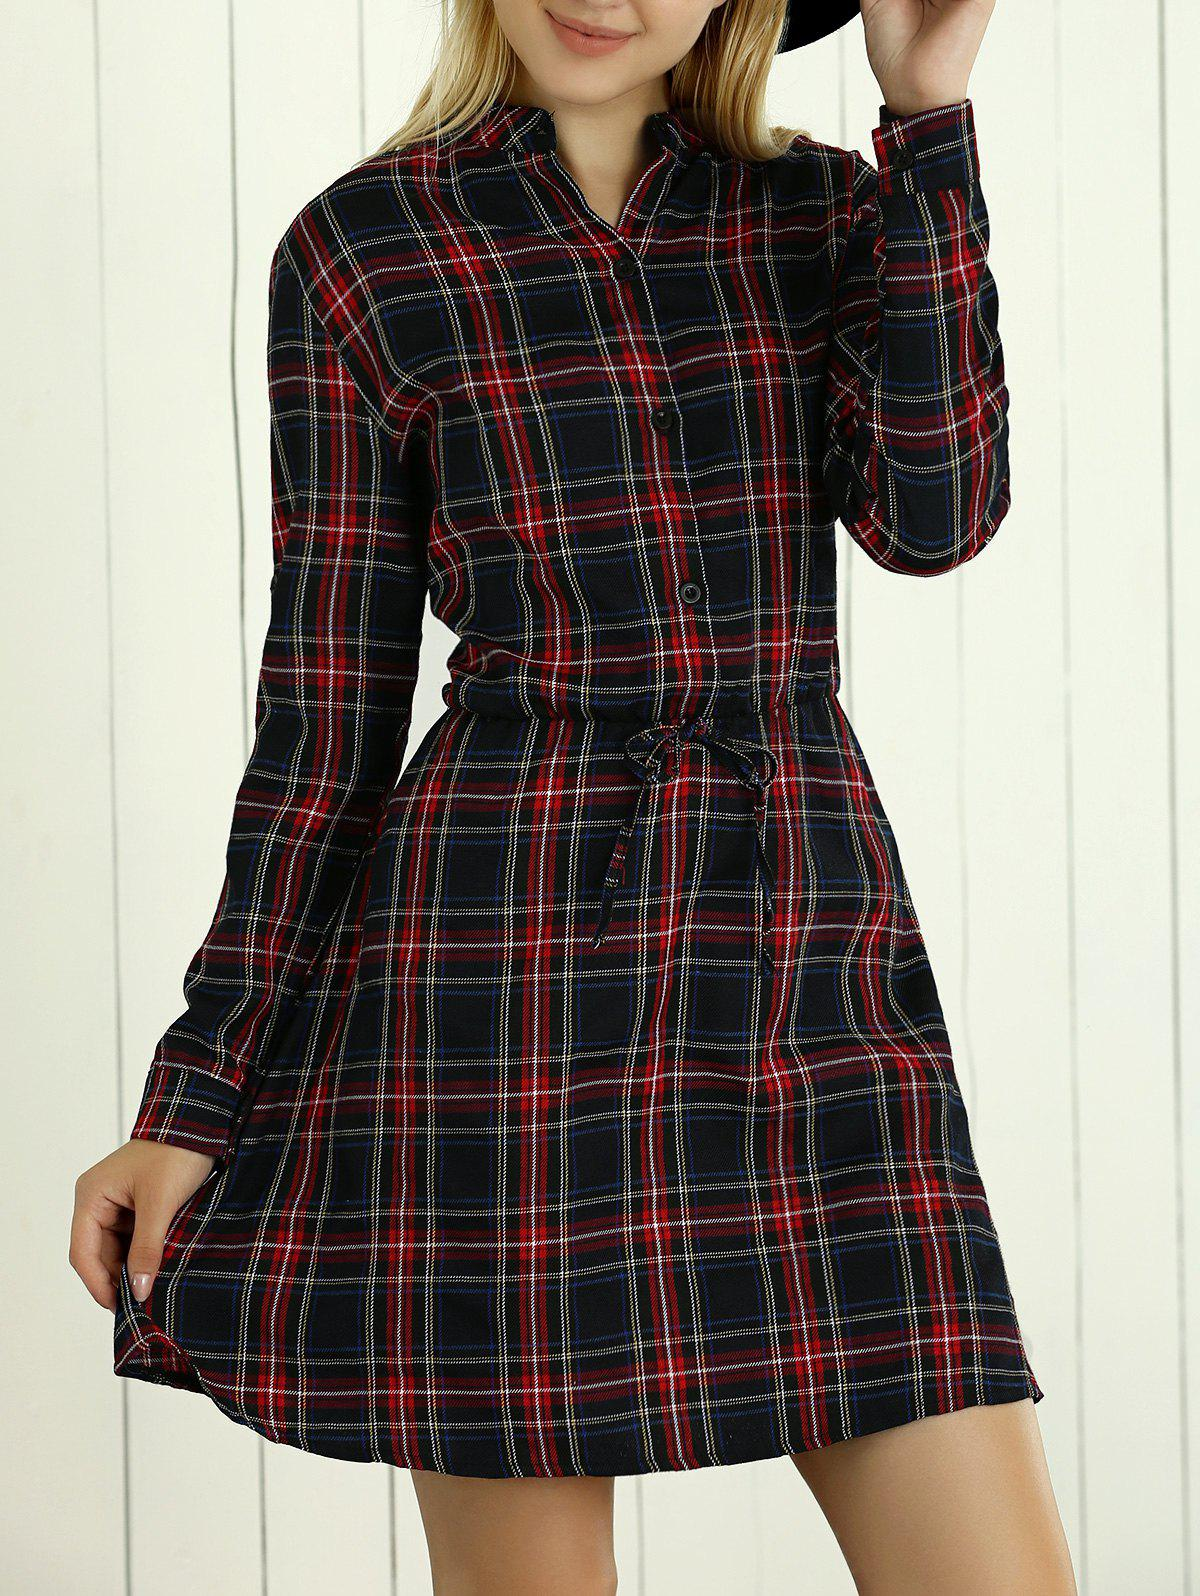 Plaid Shirt Dresses. invalid category id. Plaid Shirt Dresses. Showing 18 of 18 results that match your query. Sexy Women Side Slits Criss Cross Back Long Maxi Dress, L. Add To Cart. There is a problem adding to cart. Please try again. Product - Lauren Ralph Lauren Womens Wool Faux Leather Trim Wear to Work Dress.